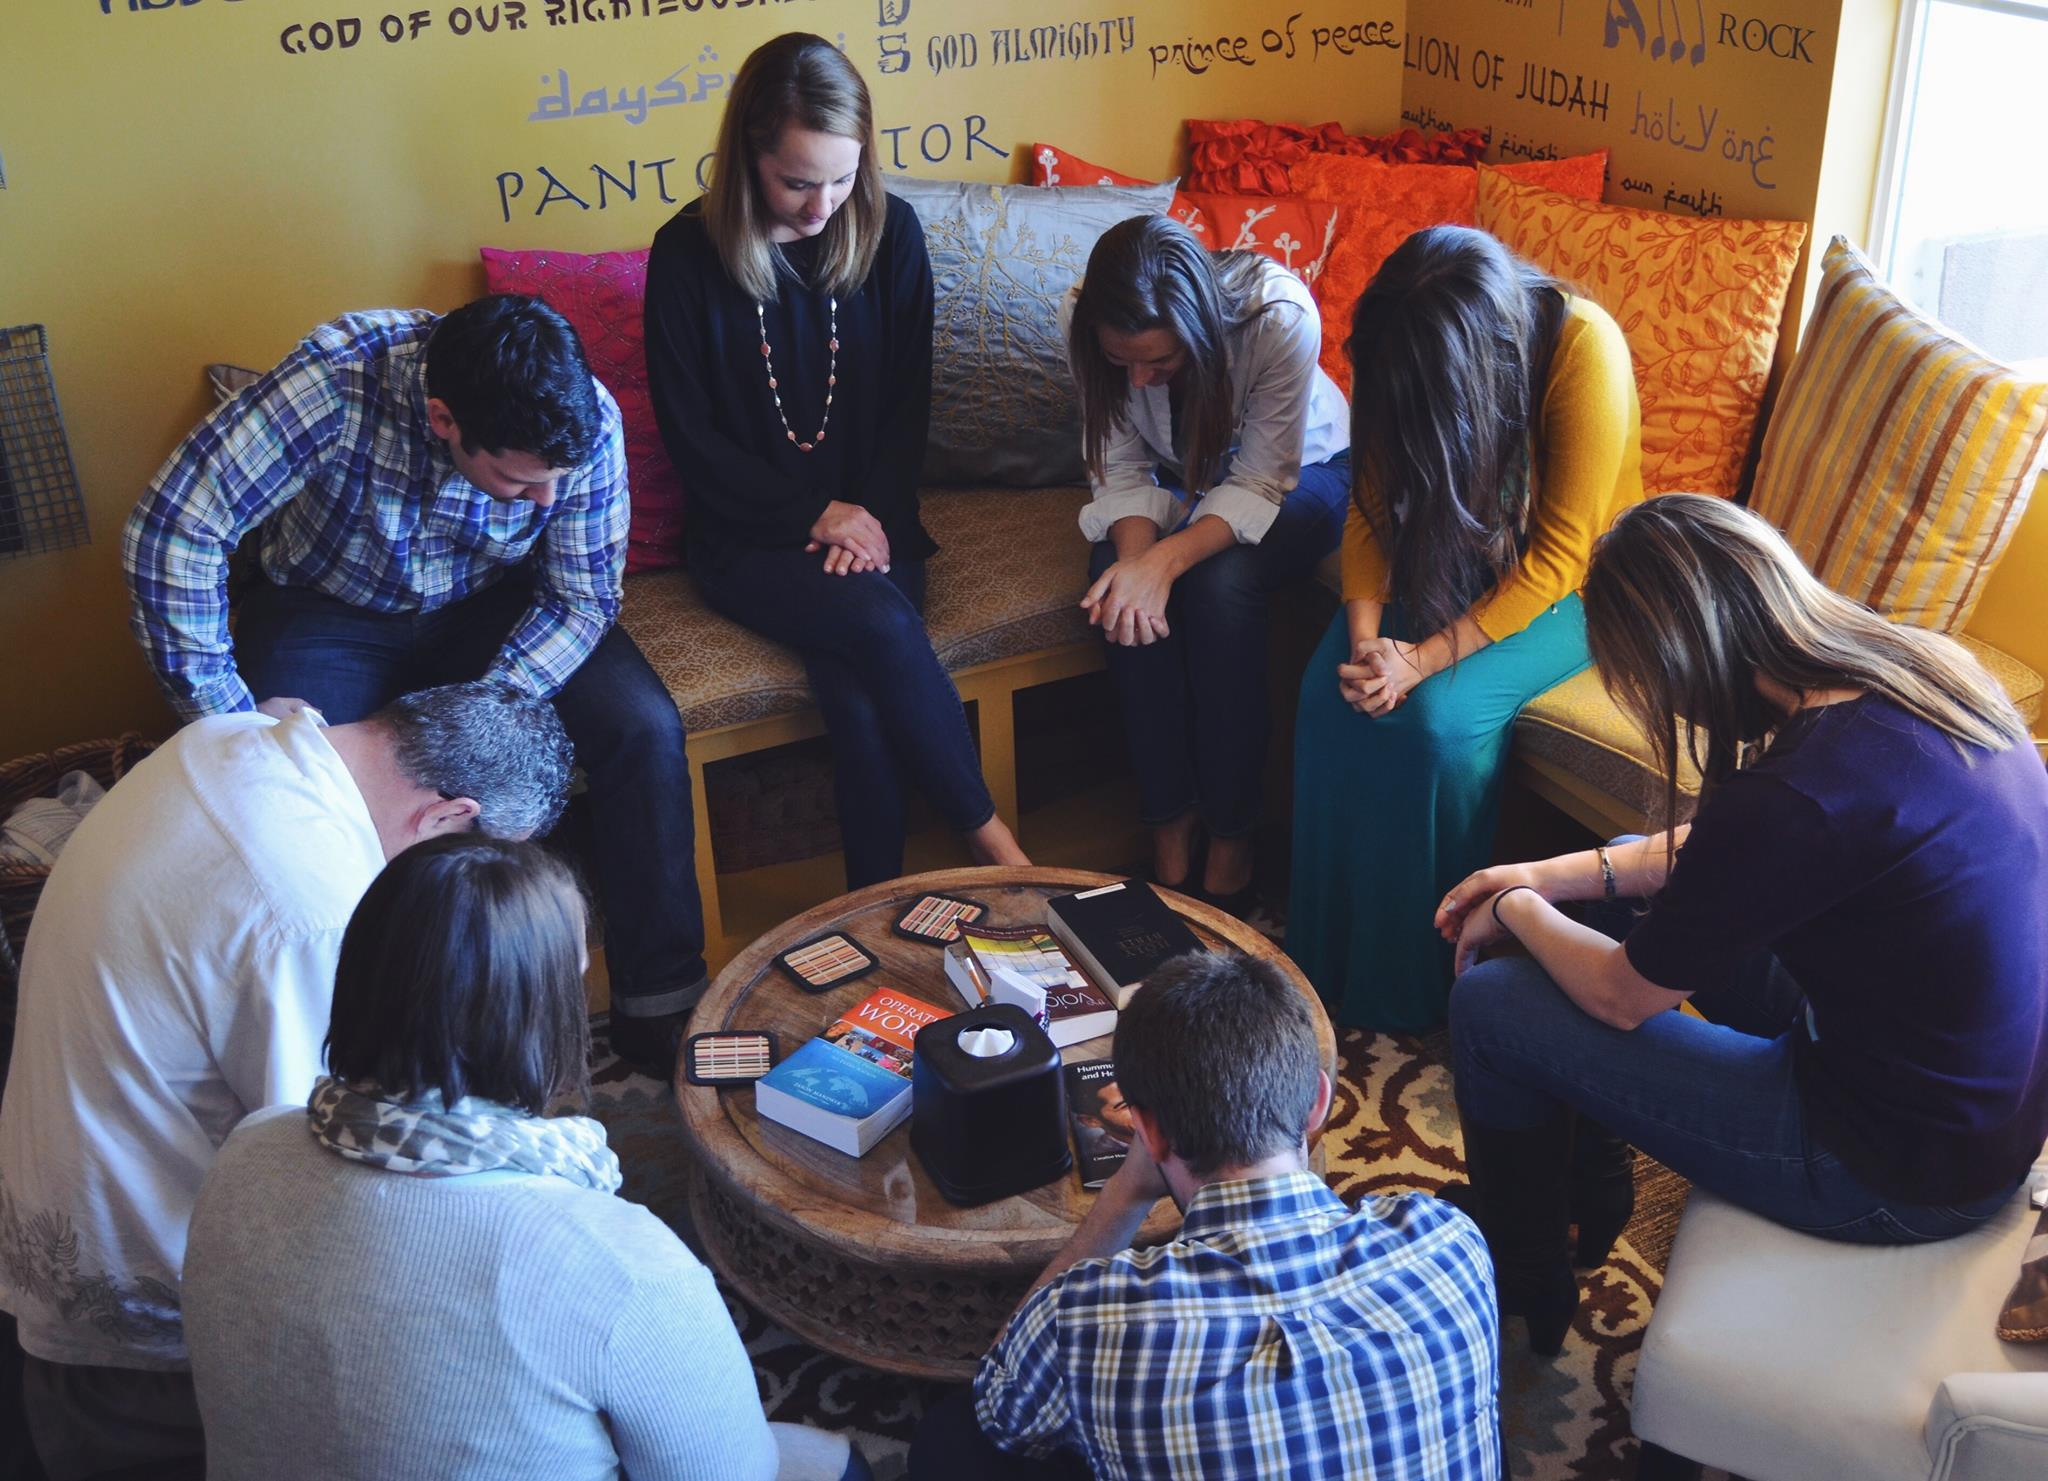 One Bible study, a great heart, and a lot of Christ